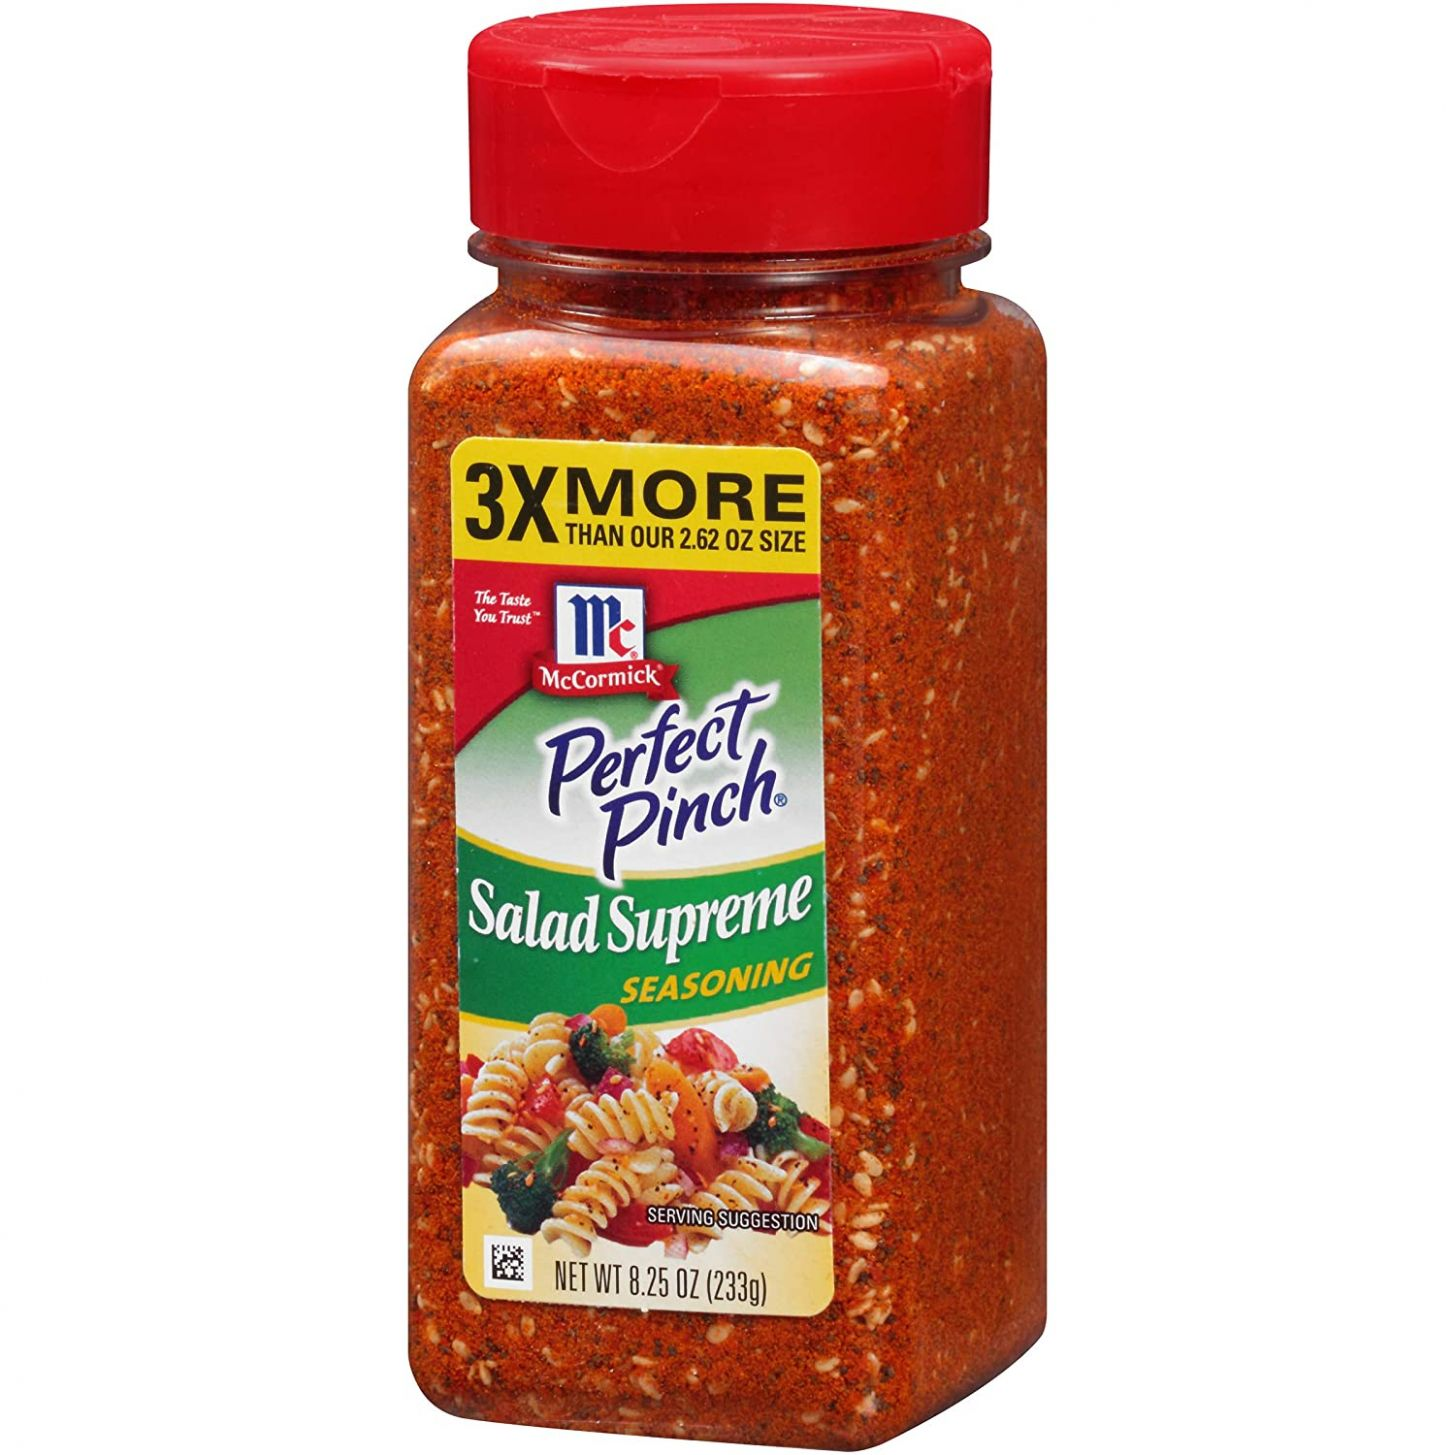 McCormick Perfect Pinch Salad Supreme Seasoning, 12